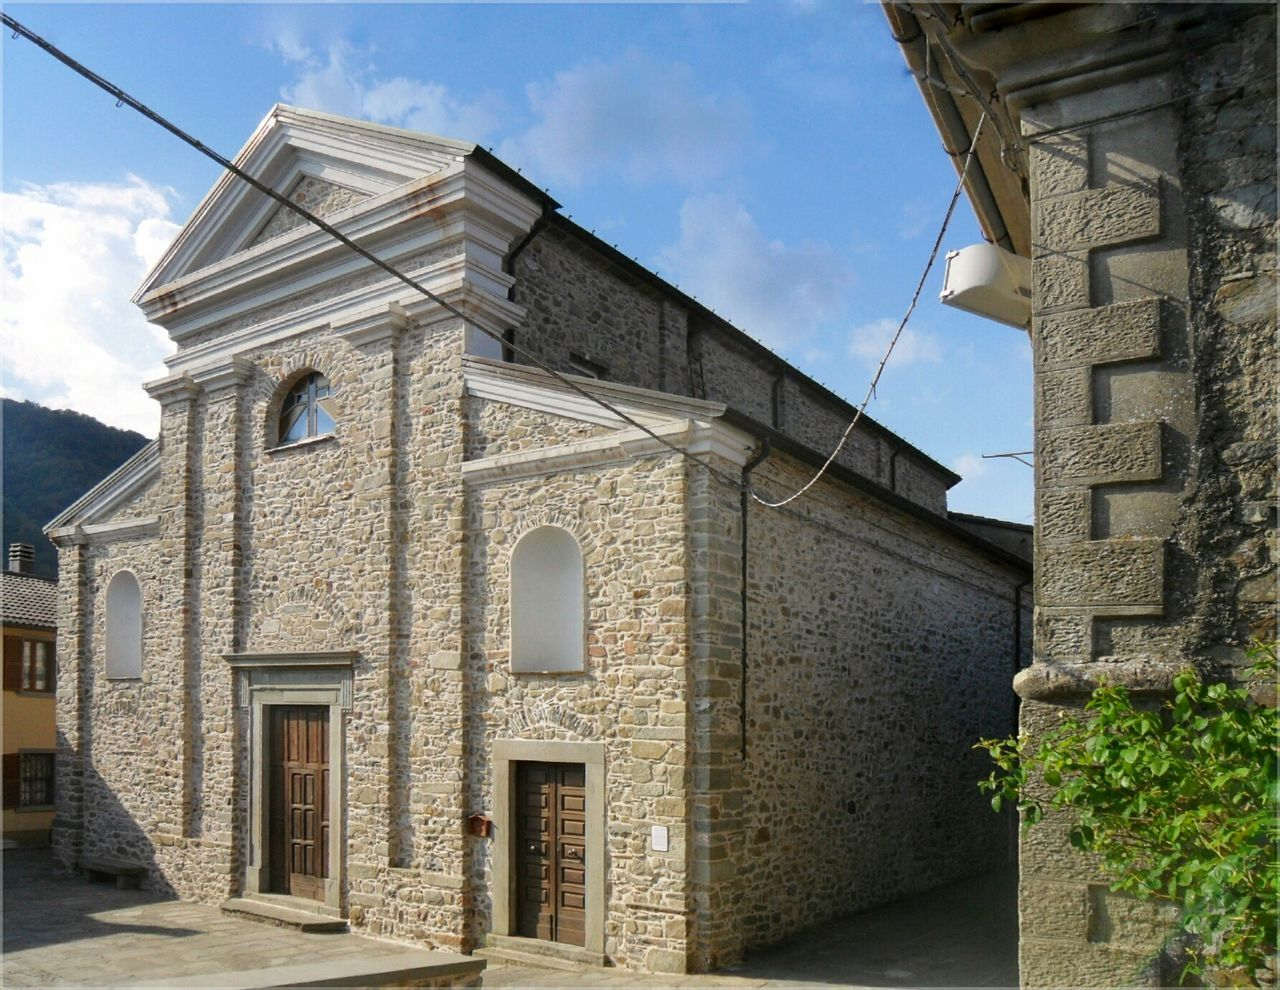 Montereggio Lunigiana new Church/ Not Enough space / Architecture Built Structure Building Exterior Sky No People Outdoors Day Cloud - Sky Cavi Del Caxxo